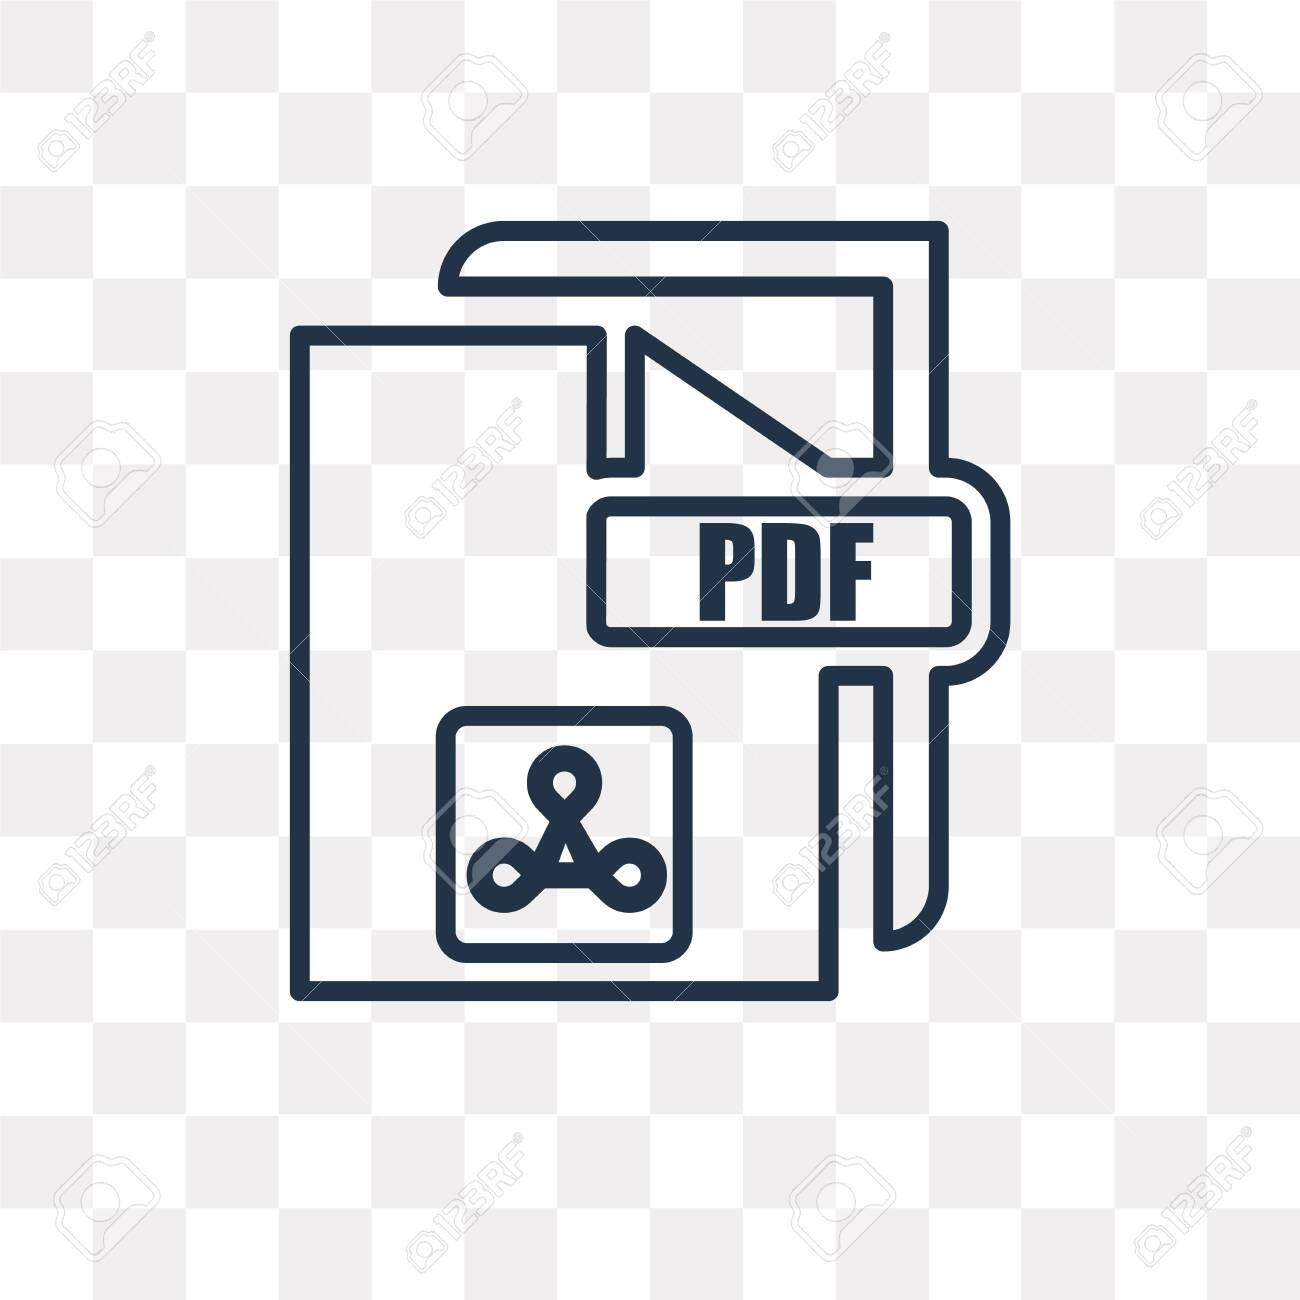 Pdf Vector Outline Icon Isolated On Transparent Background High